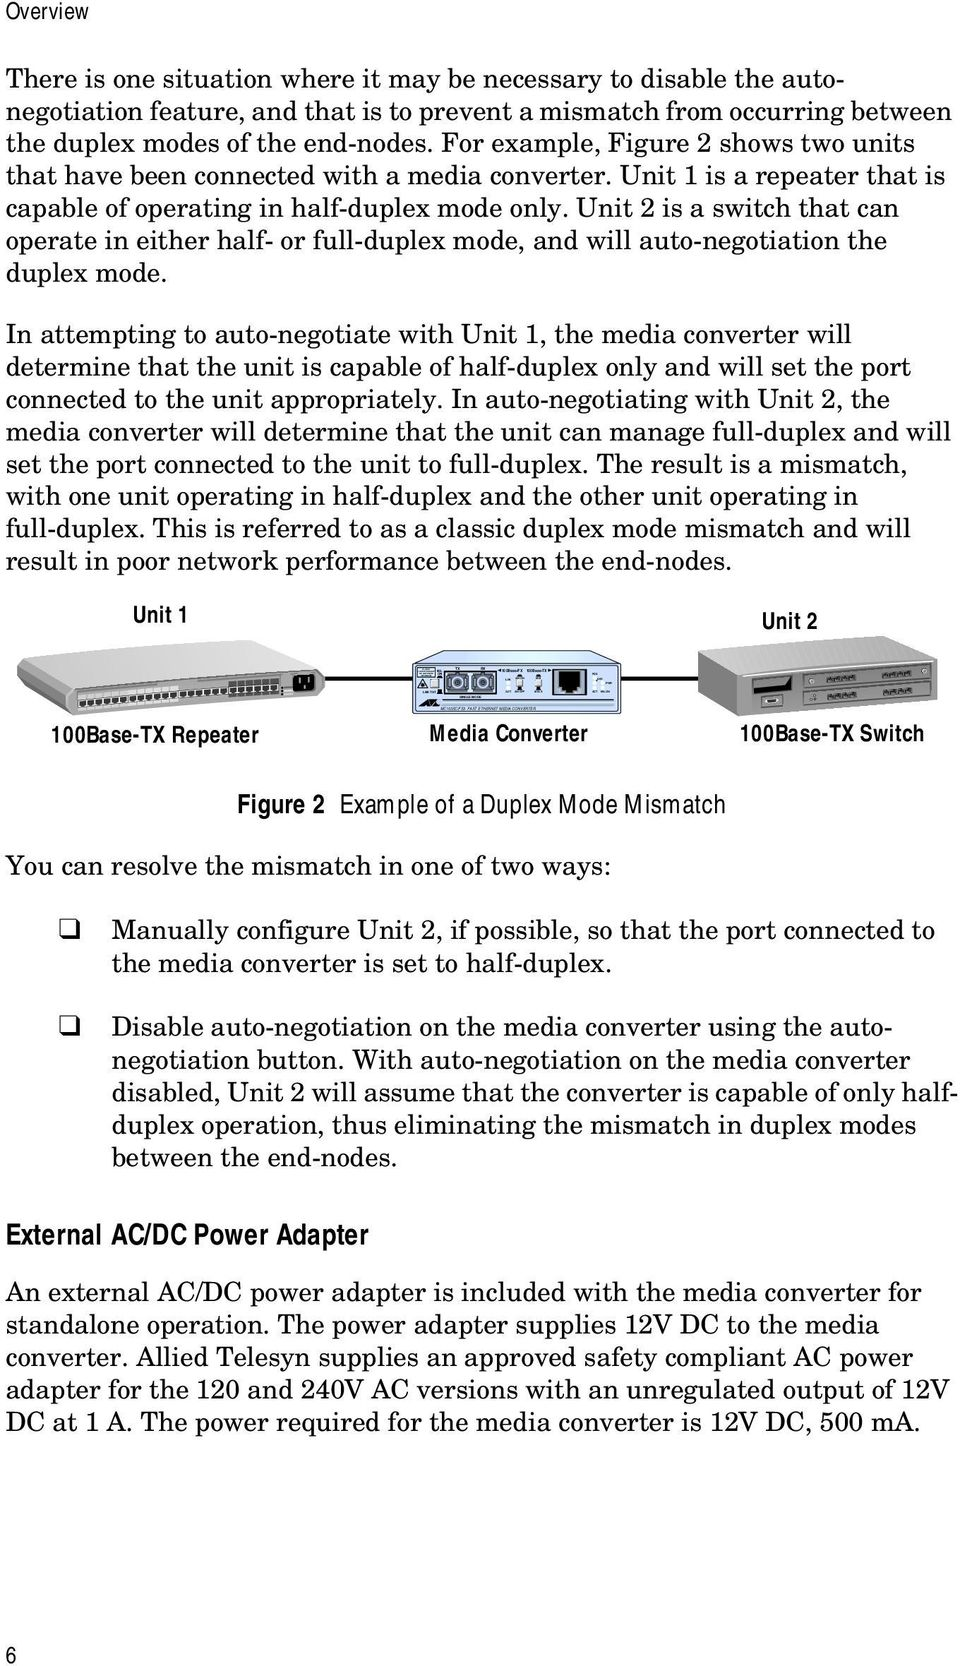 For example, Figure 2 shows two units that have been connected with a media converter. Unit 1 is a repeater that is capable of operating in half-duplex mode only.